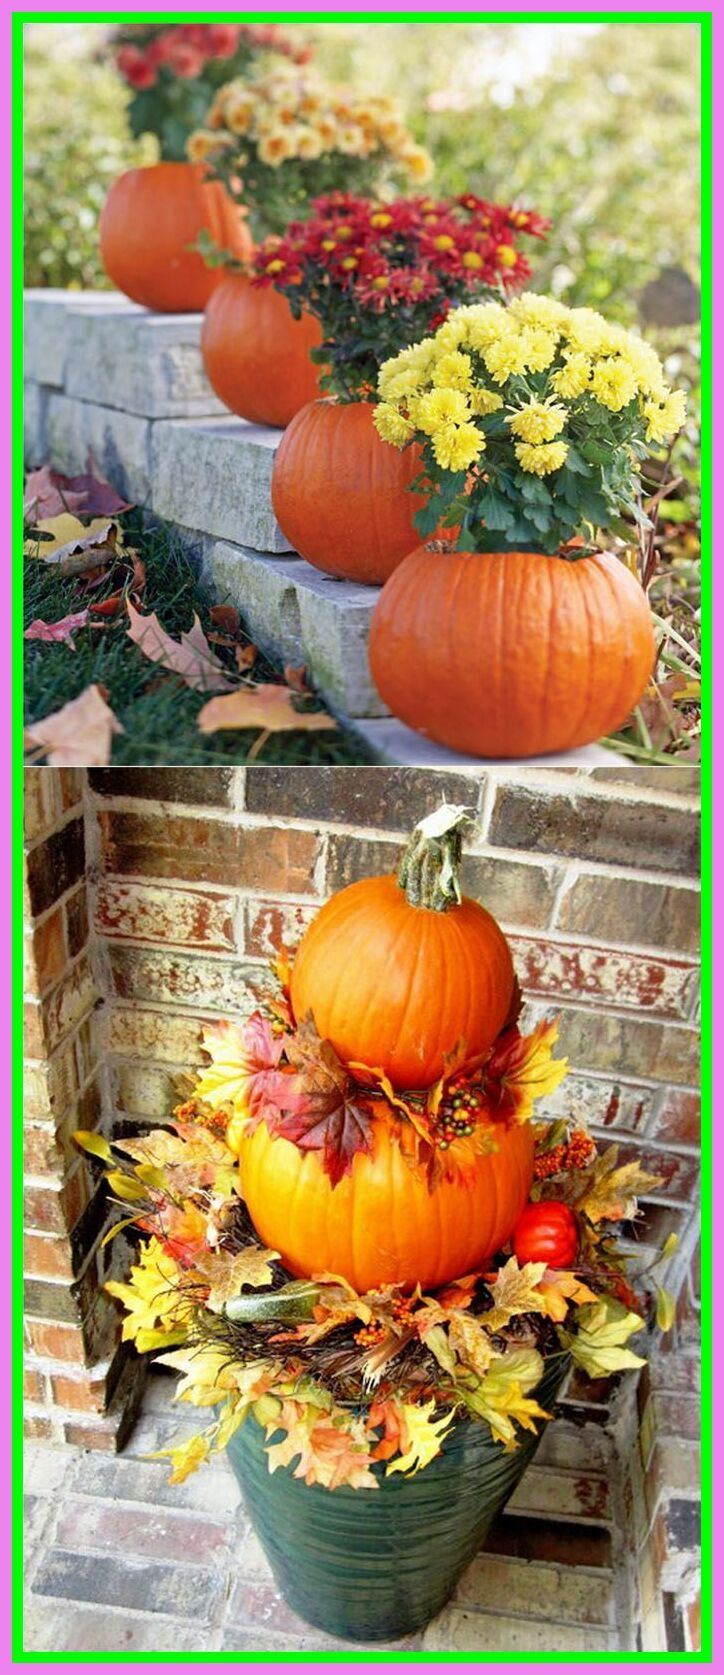 96 Reference Of Fall Door Decorations Diy In 2020 Fall Yard Decor Fall Door Decorations Front Door Fall Decor